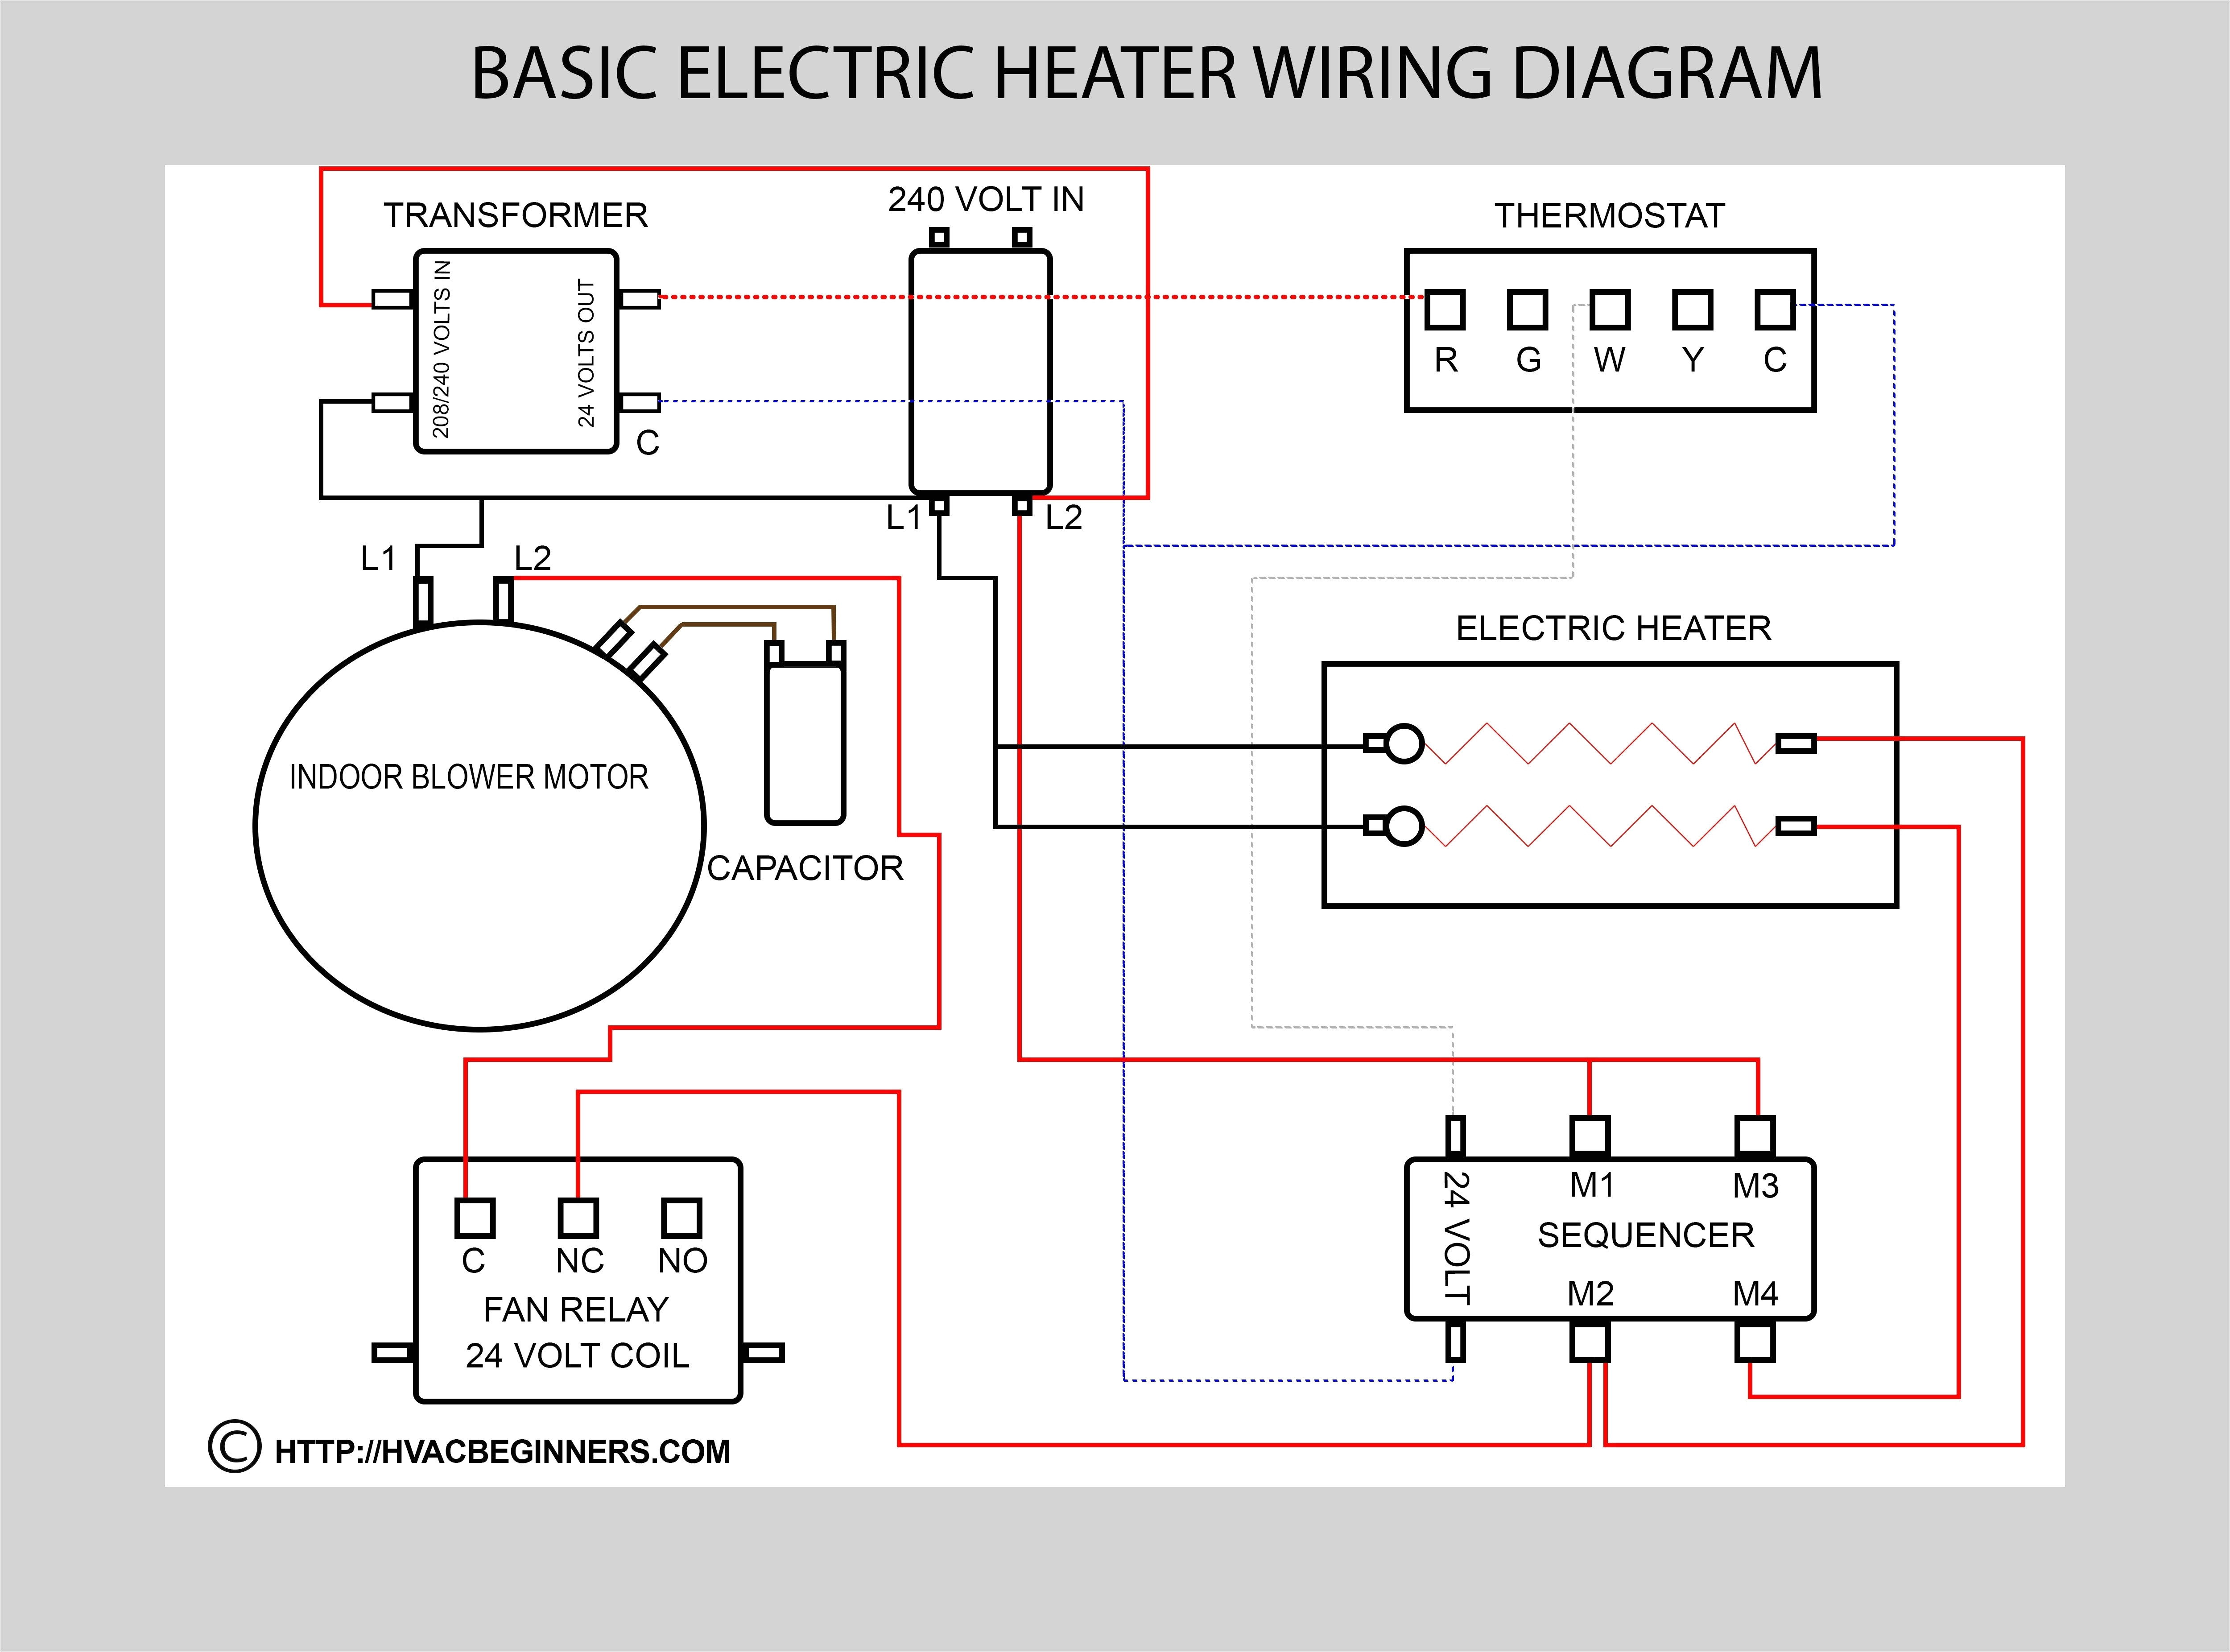 Tempstar Wiring Diagram: Arcoaire Air Conditioning and Heating Tempstar Air Conditioner rh:adinaporter.com,Design